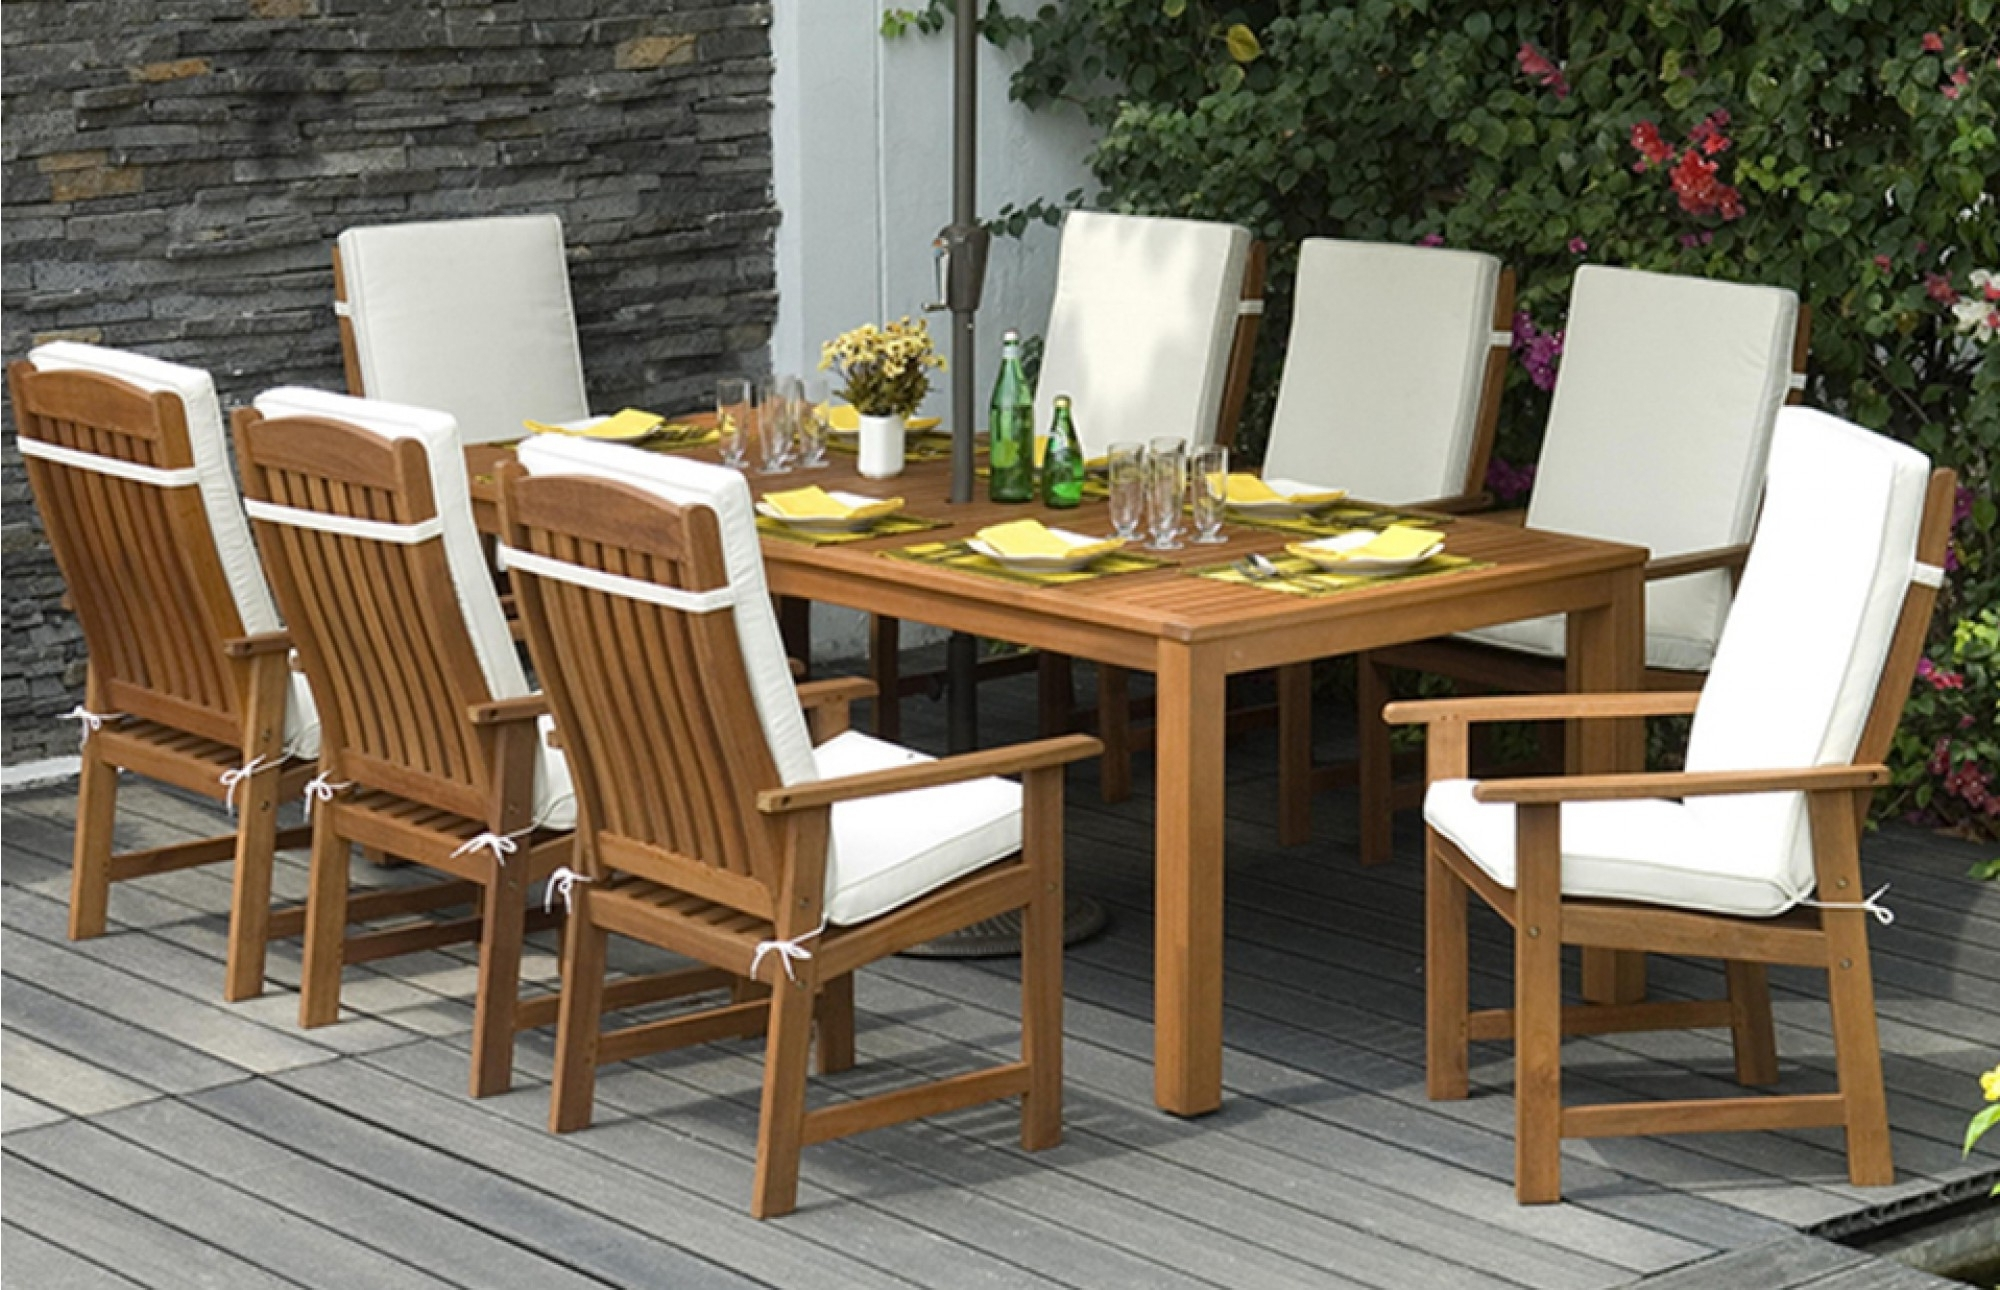 Dining Table Sets 8 Seater • Table Setting Ideas in Most Popular 8 Seater Dining Tables And Chairs